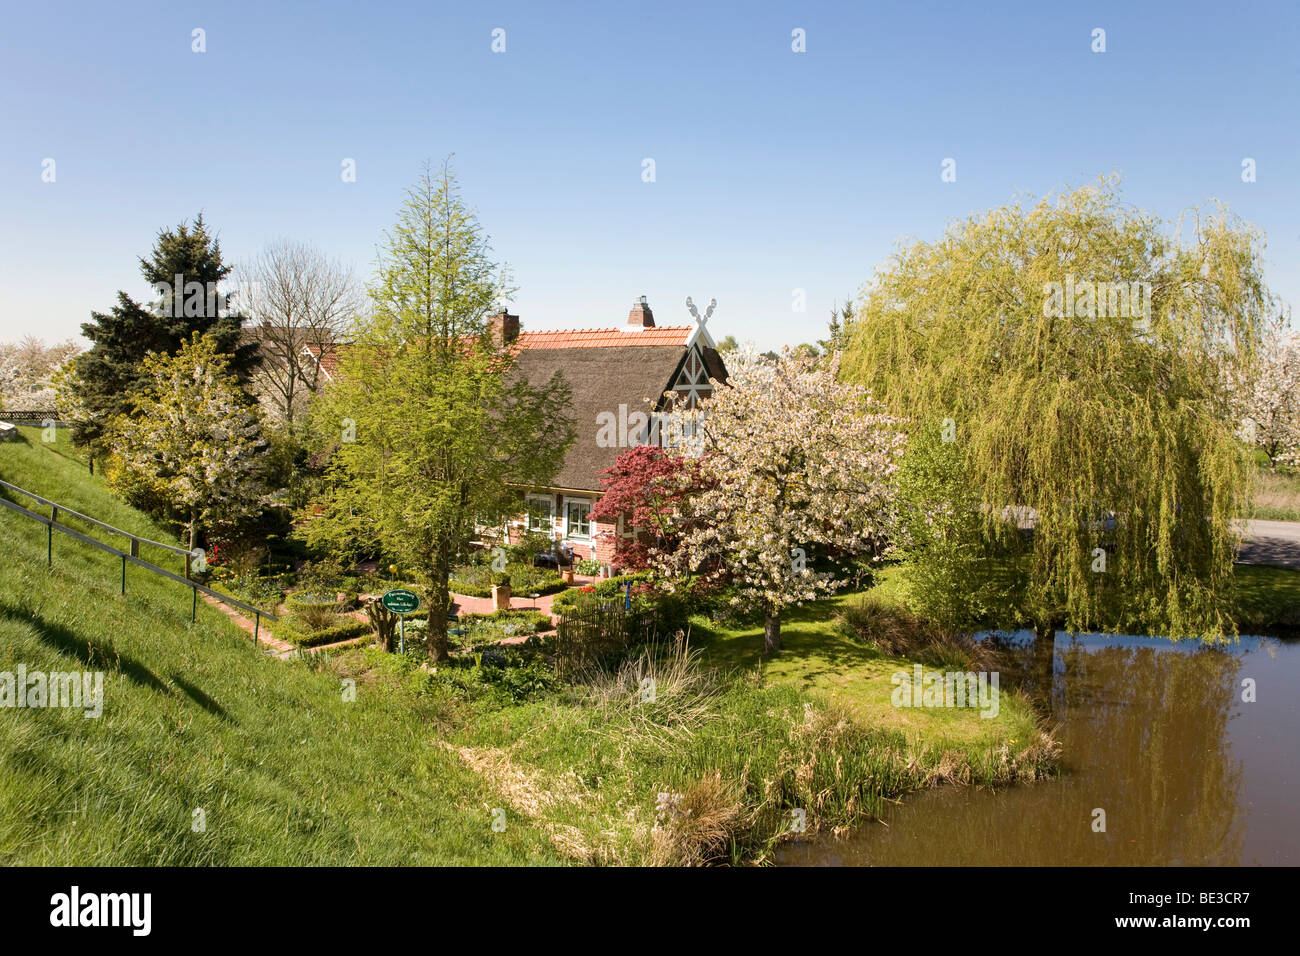 Regional farmhouse idyllically located on a pond in Gruenendeich, Altes Land, Lower Elbe, Lower Saxony, North Germany, - Stock Image